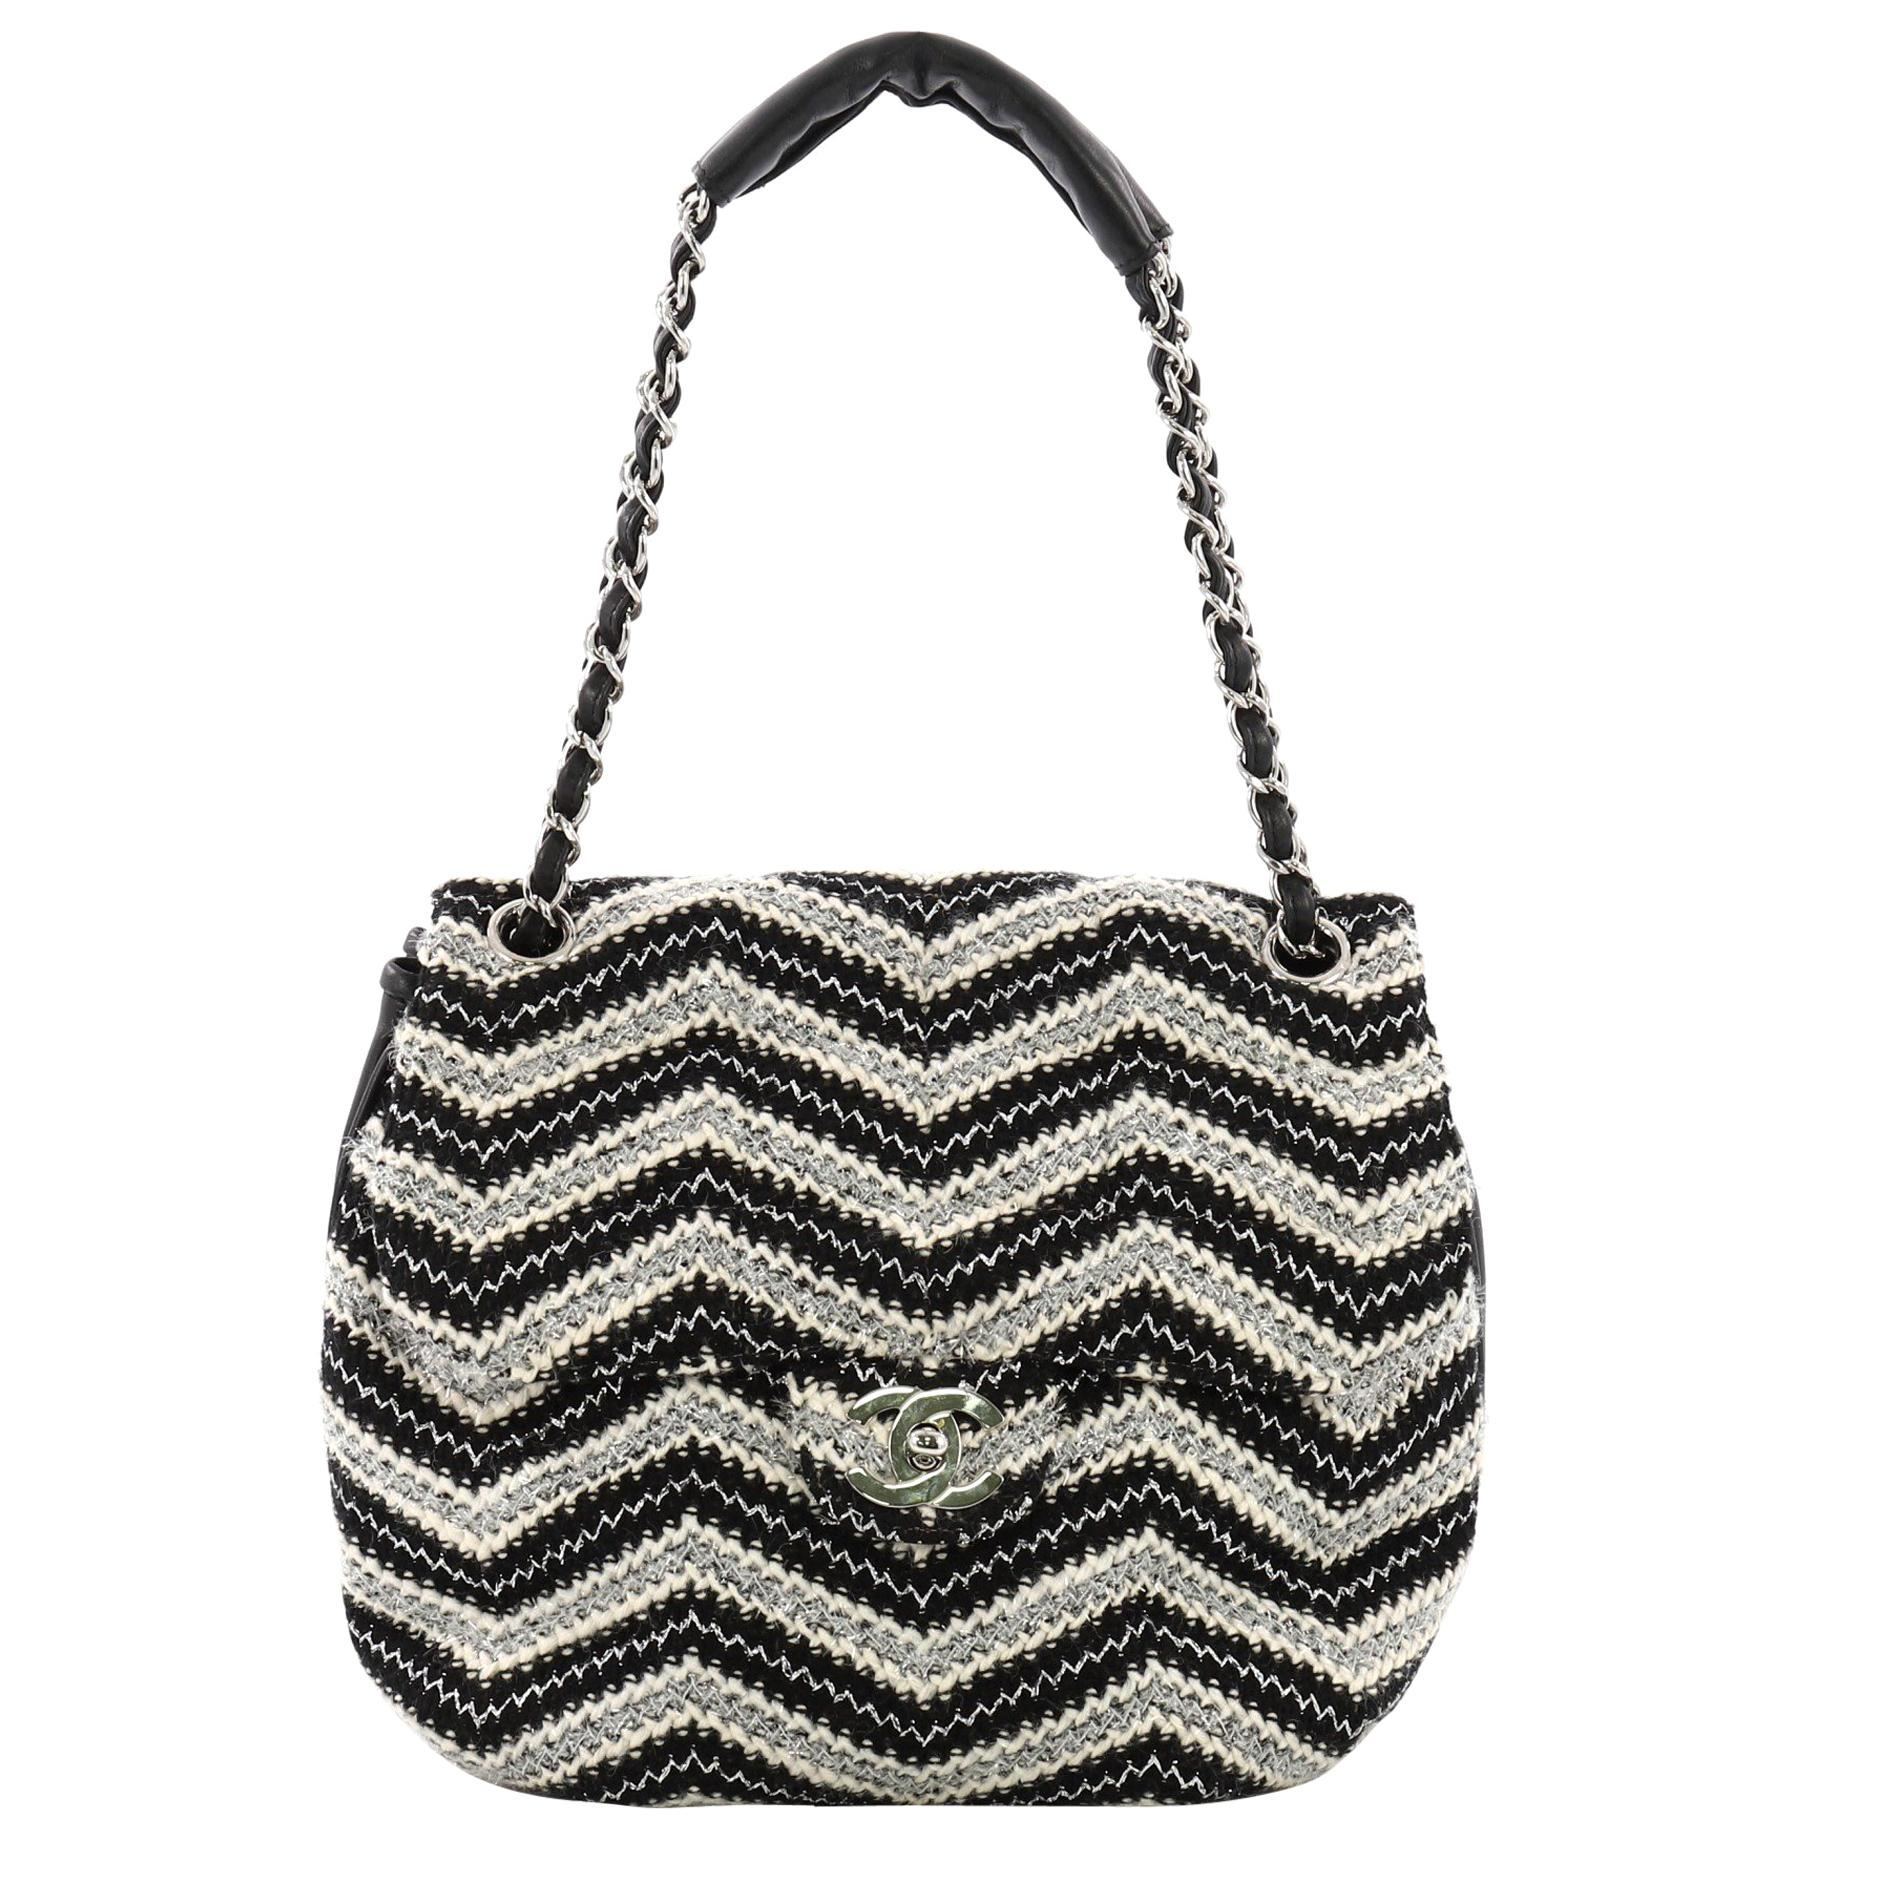 77749a2aaa2d Chanel Vintage Round Flap Bag Chevron Tweed Medium For Sale at 1stdibs